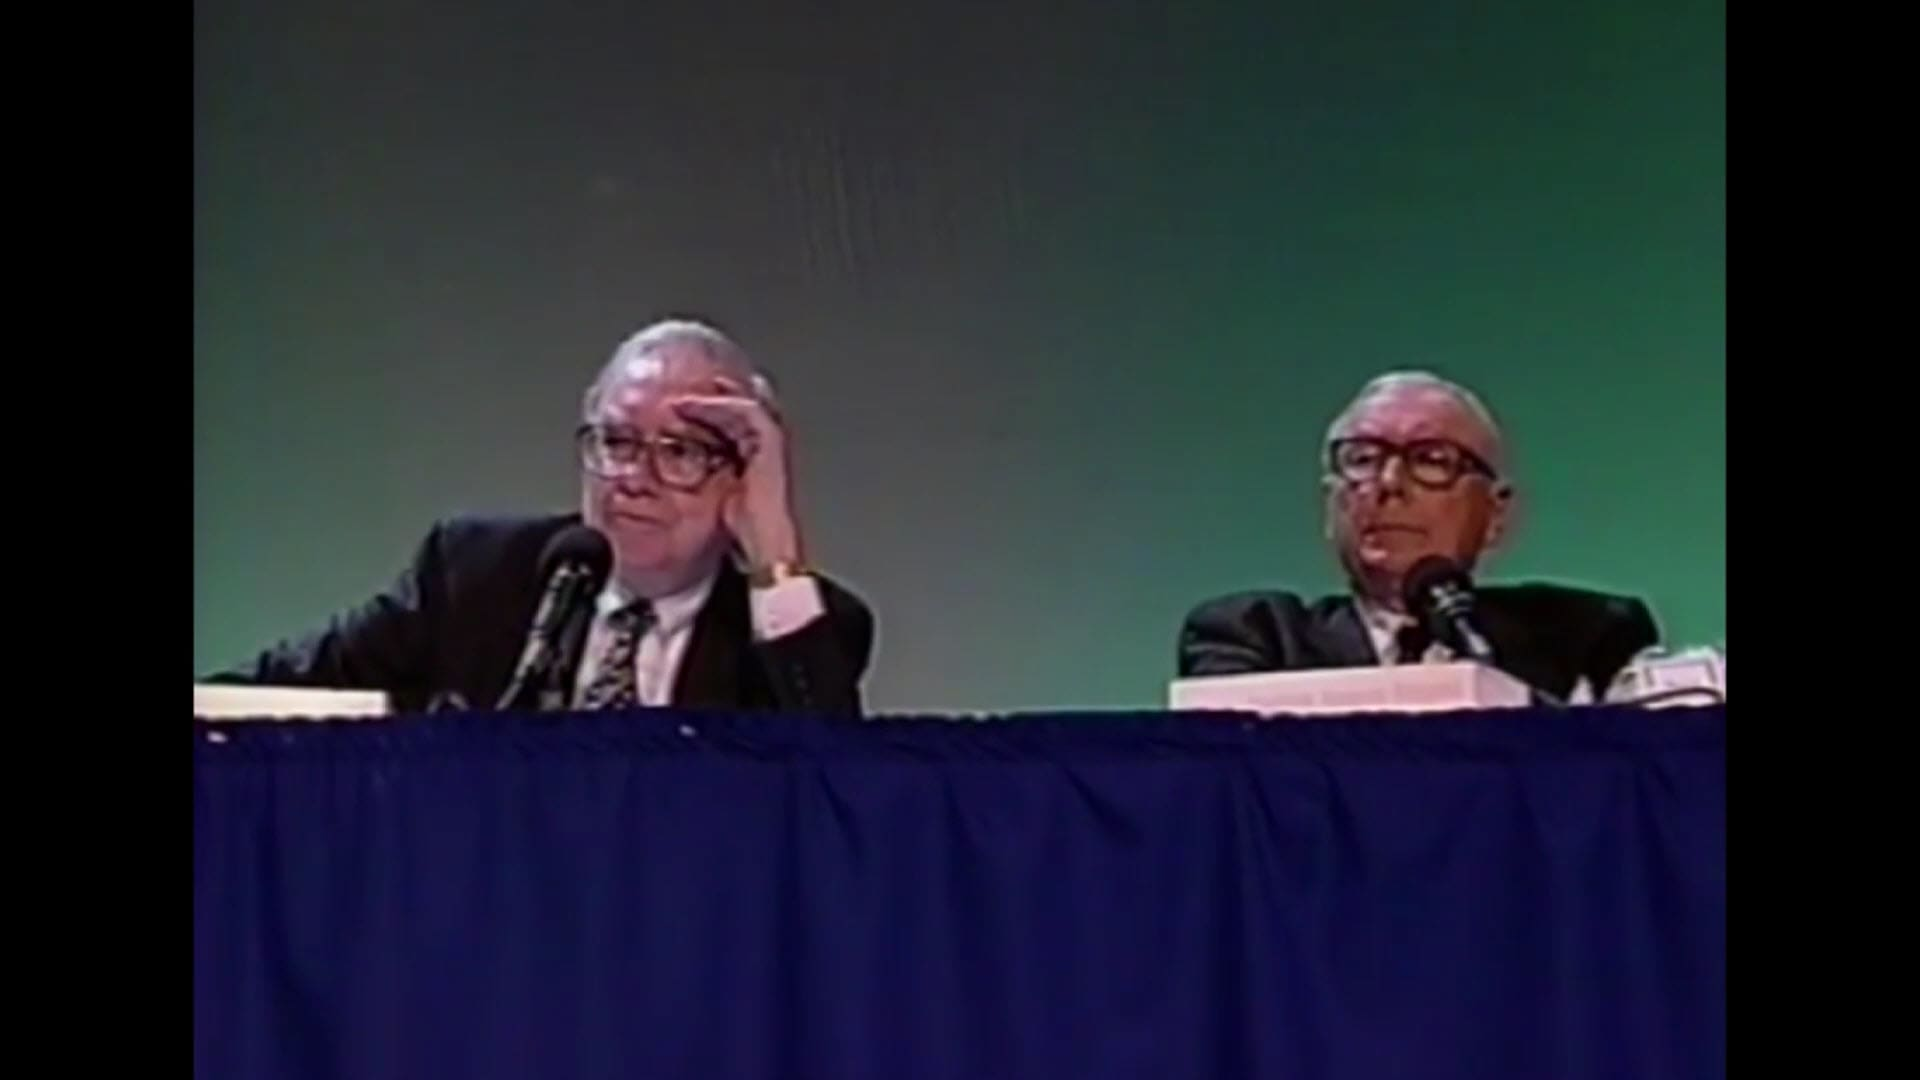 Afternoon Session - 1998 Berkshire Hathaway Annual Meeting